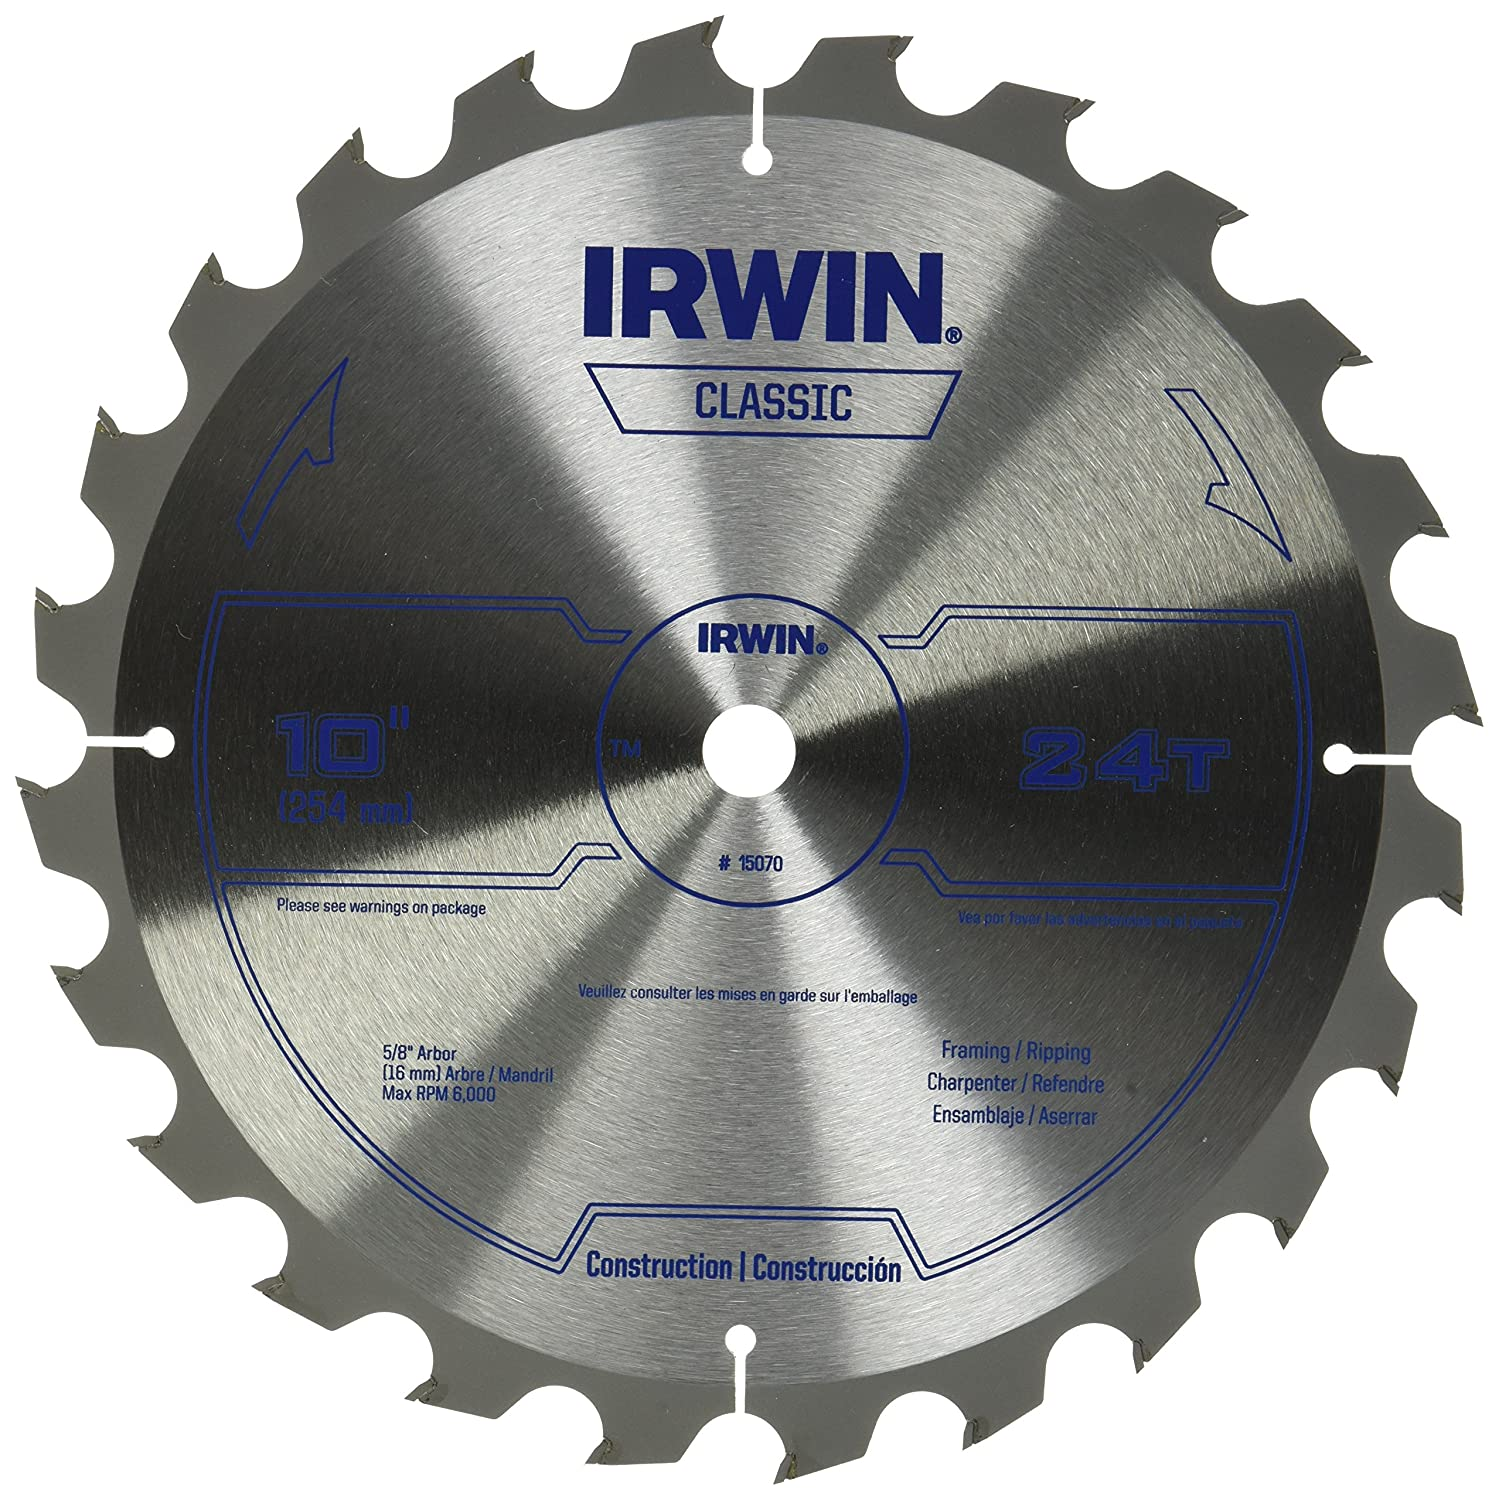 Irwin metal cutting circular saw blade 7 14 68t 4935560 metal irwin metal cutting circular saw blade 7 14 68t 4935560 metal working tools amazon greentooth Gallery